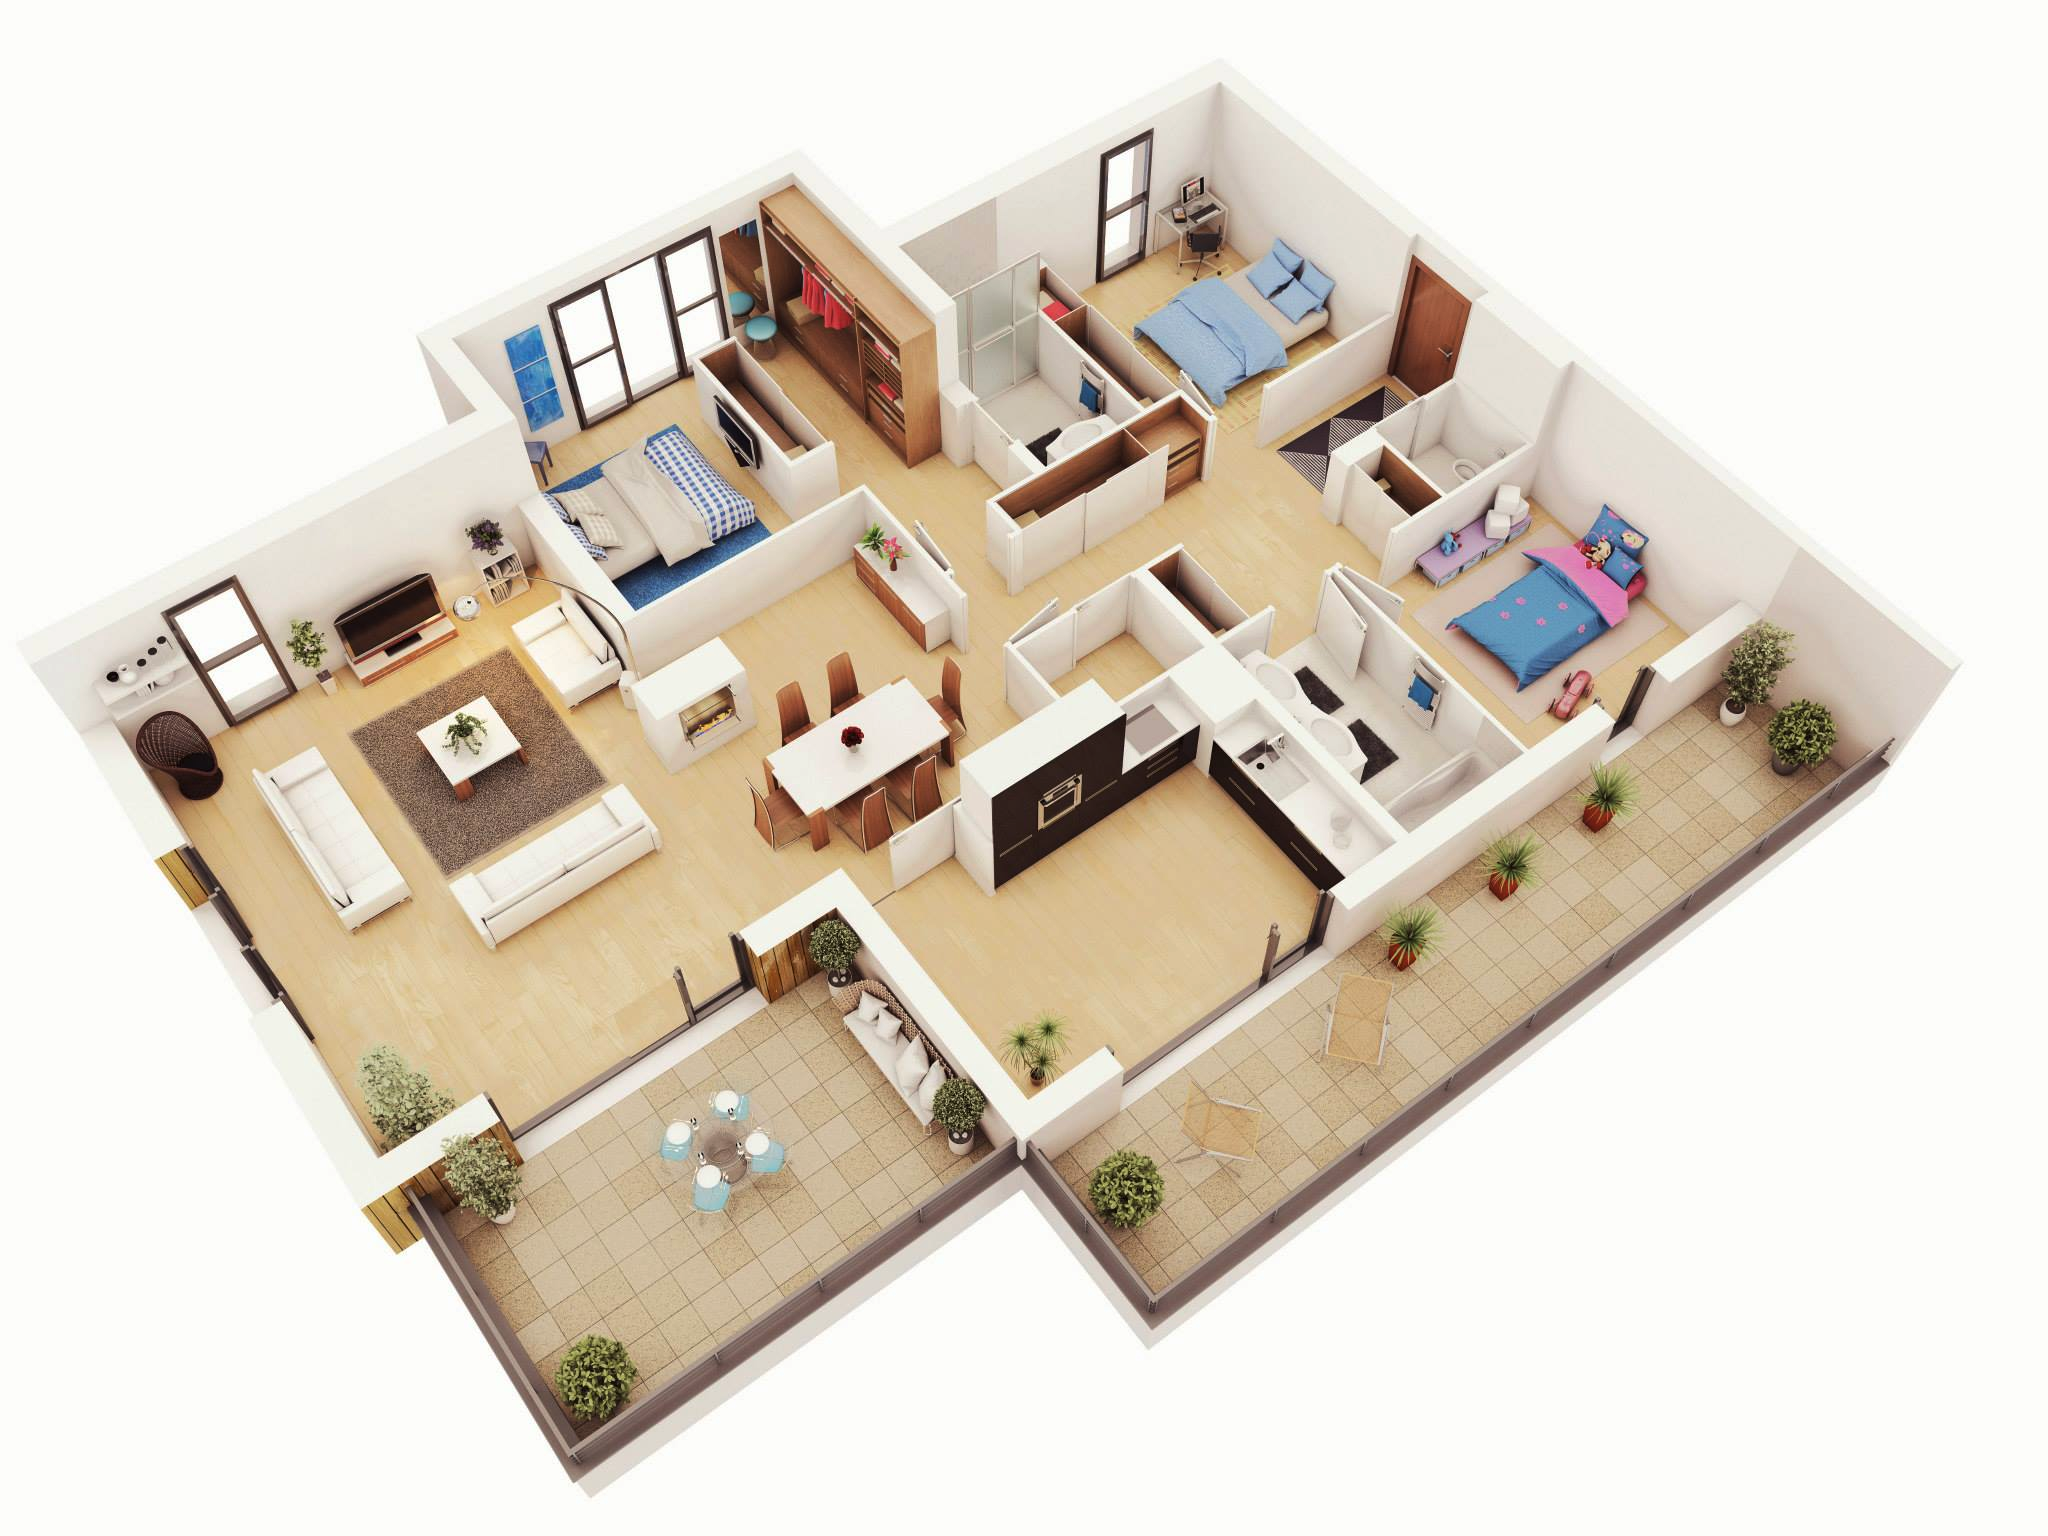 25 More 3 Bedroom 3d Floor Plans: three bedroom house plan designs